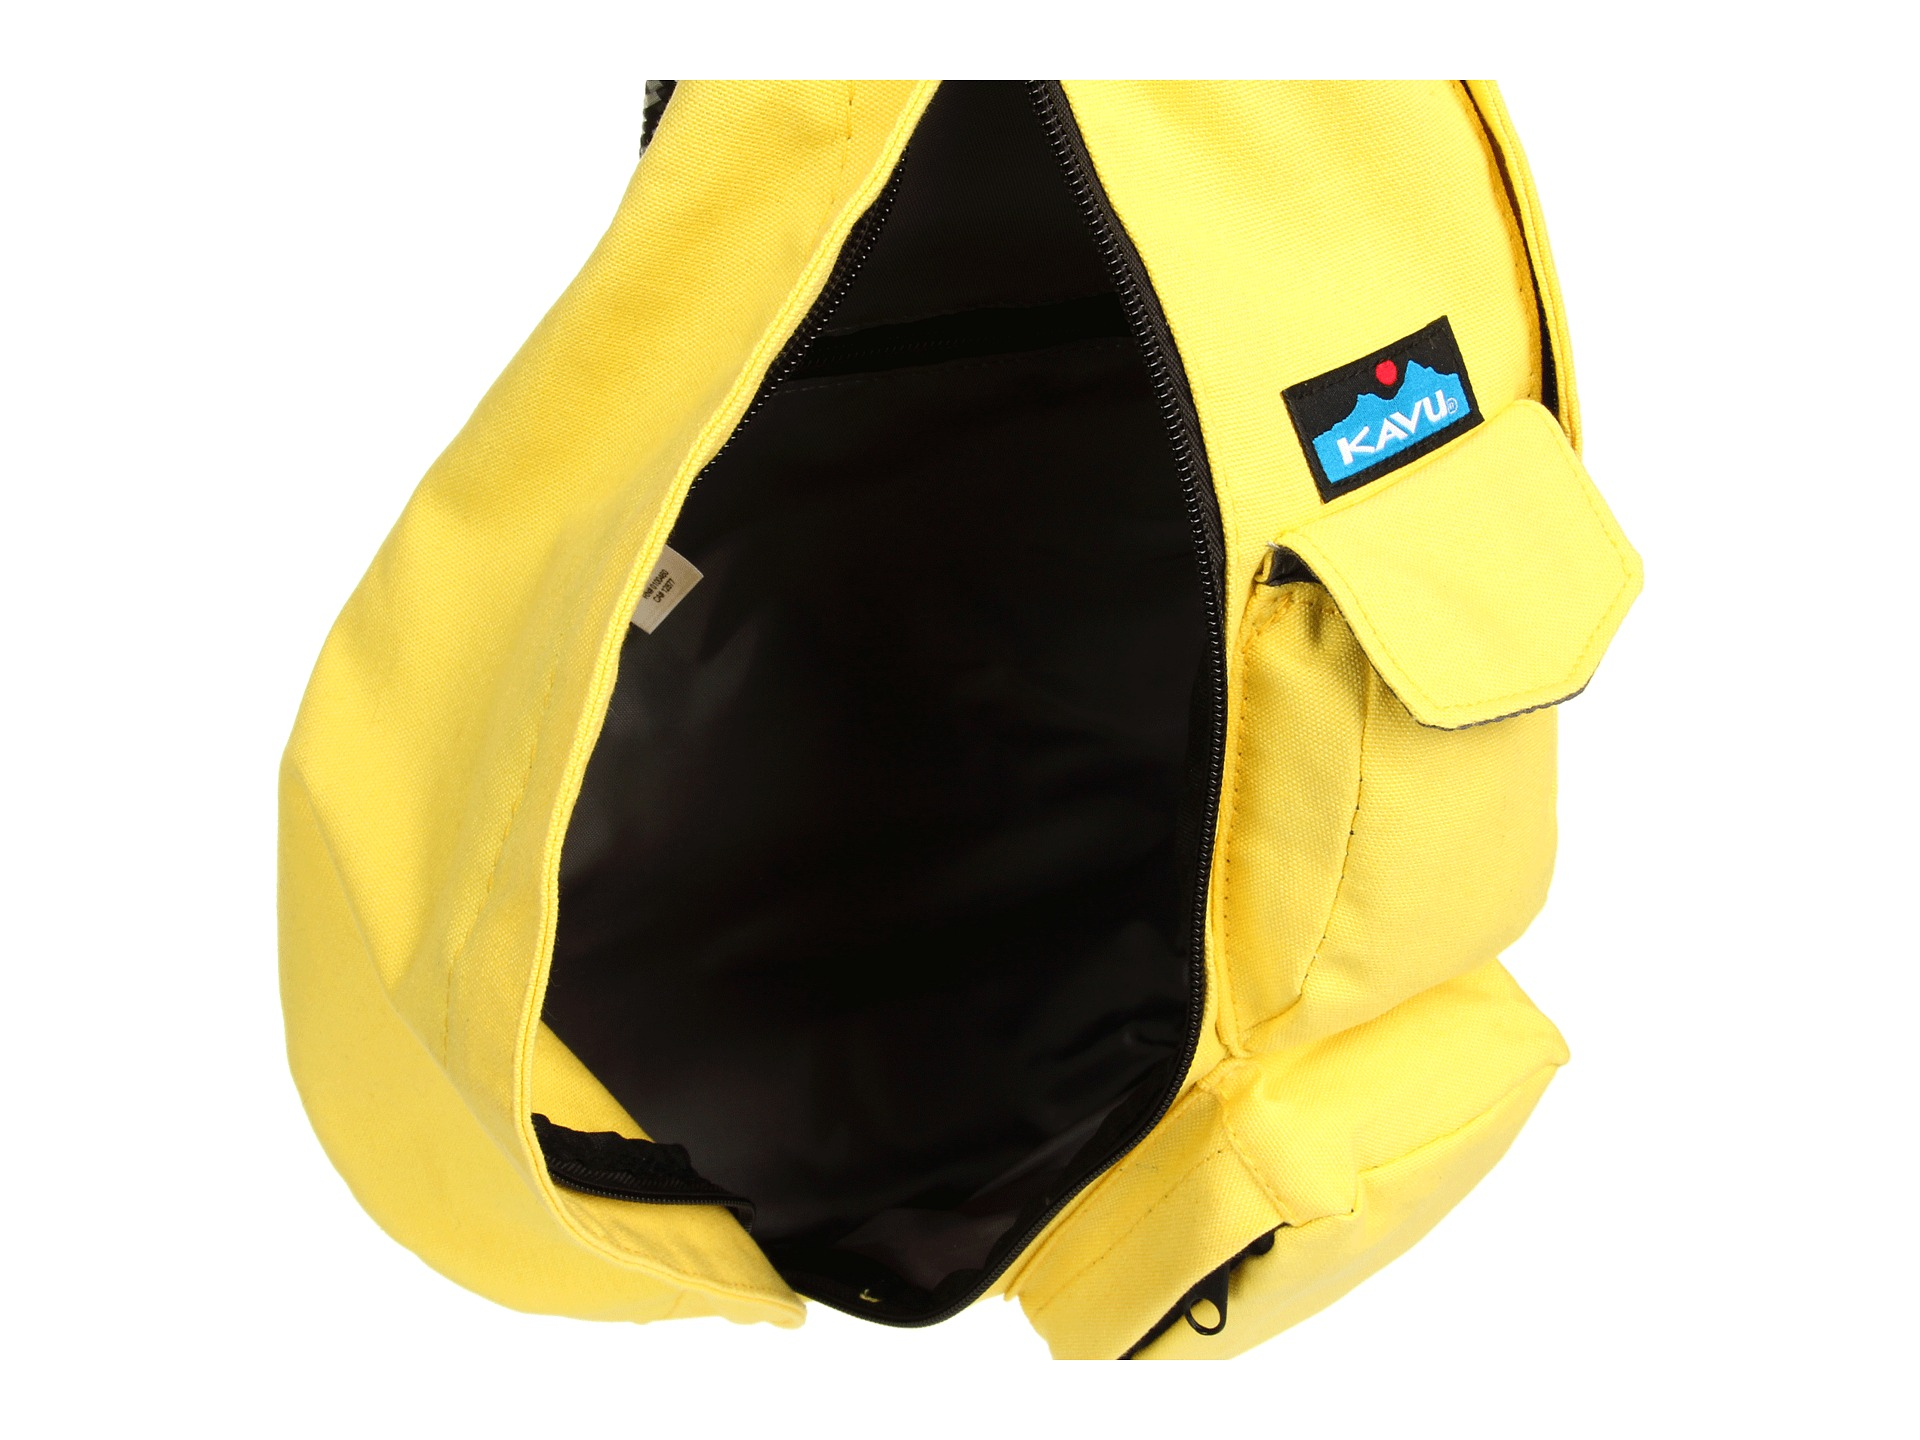 The Kavu sling bag showing the large inside compartment. Image from Kavu website.